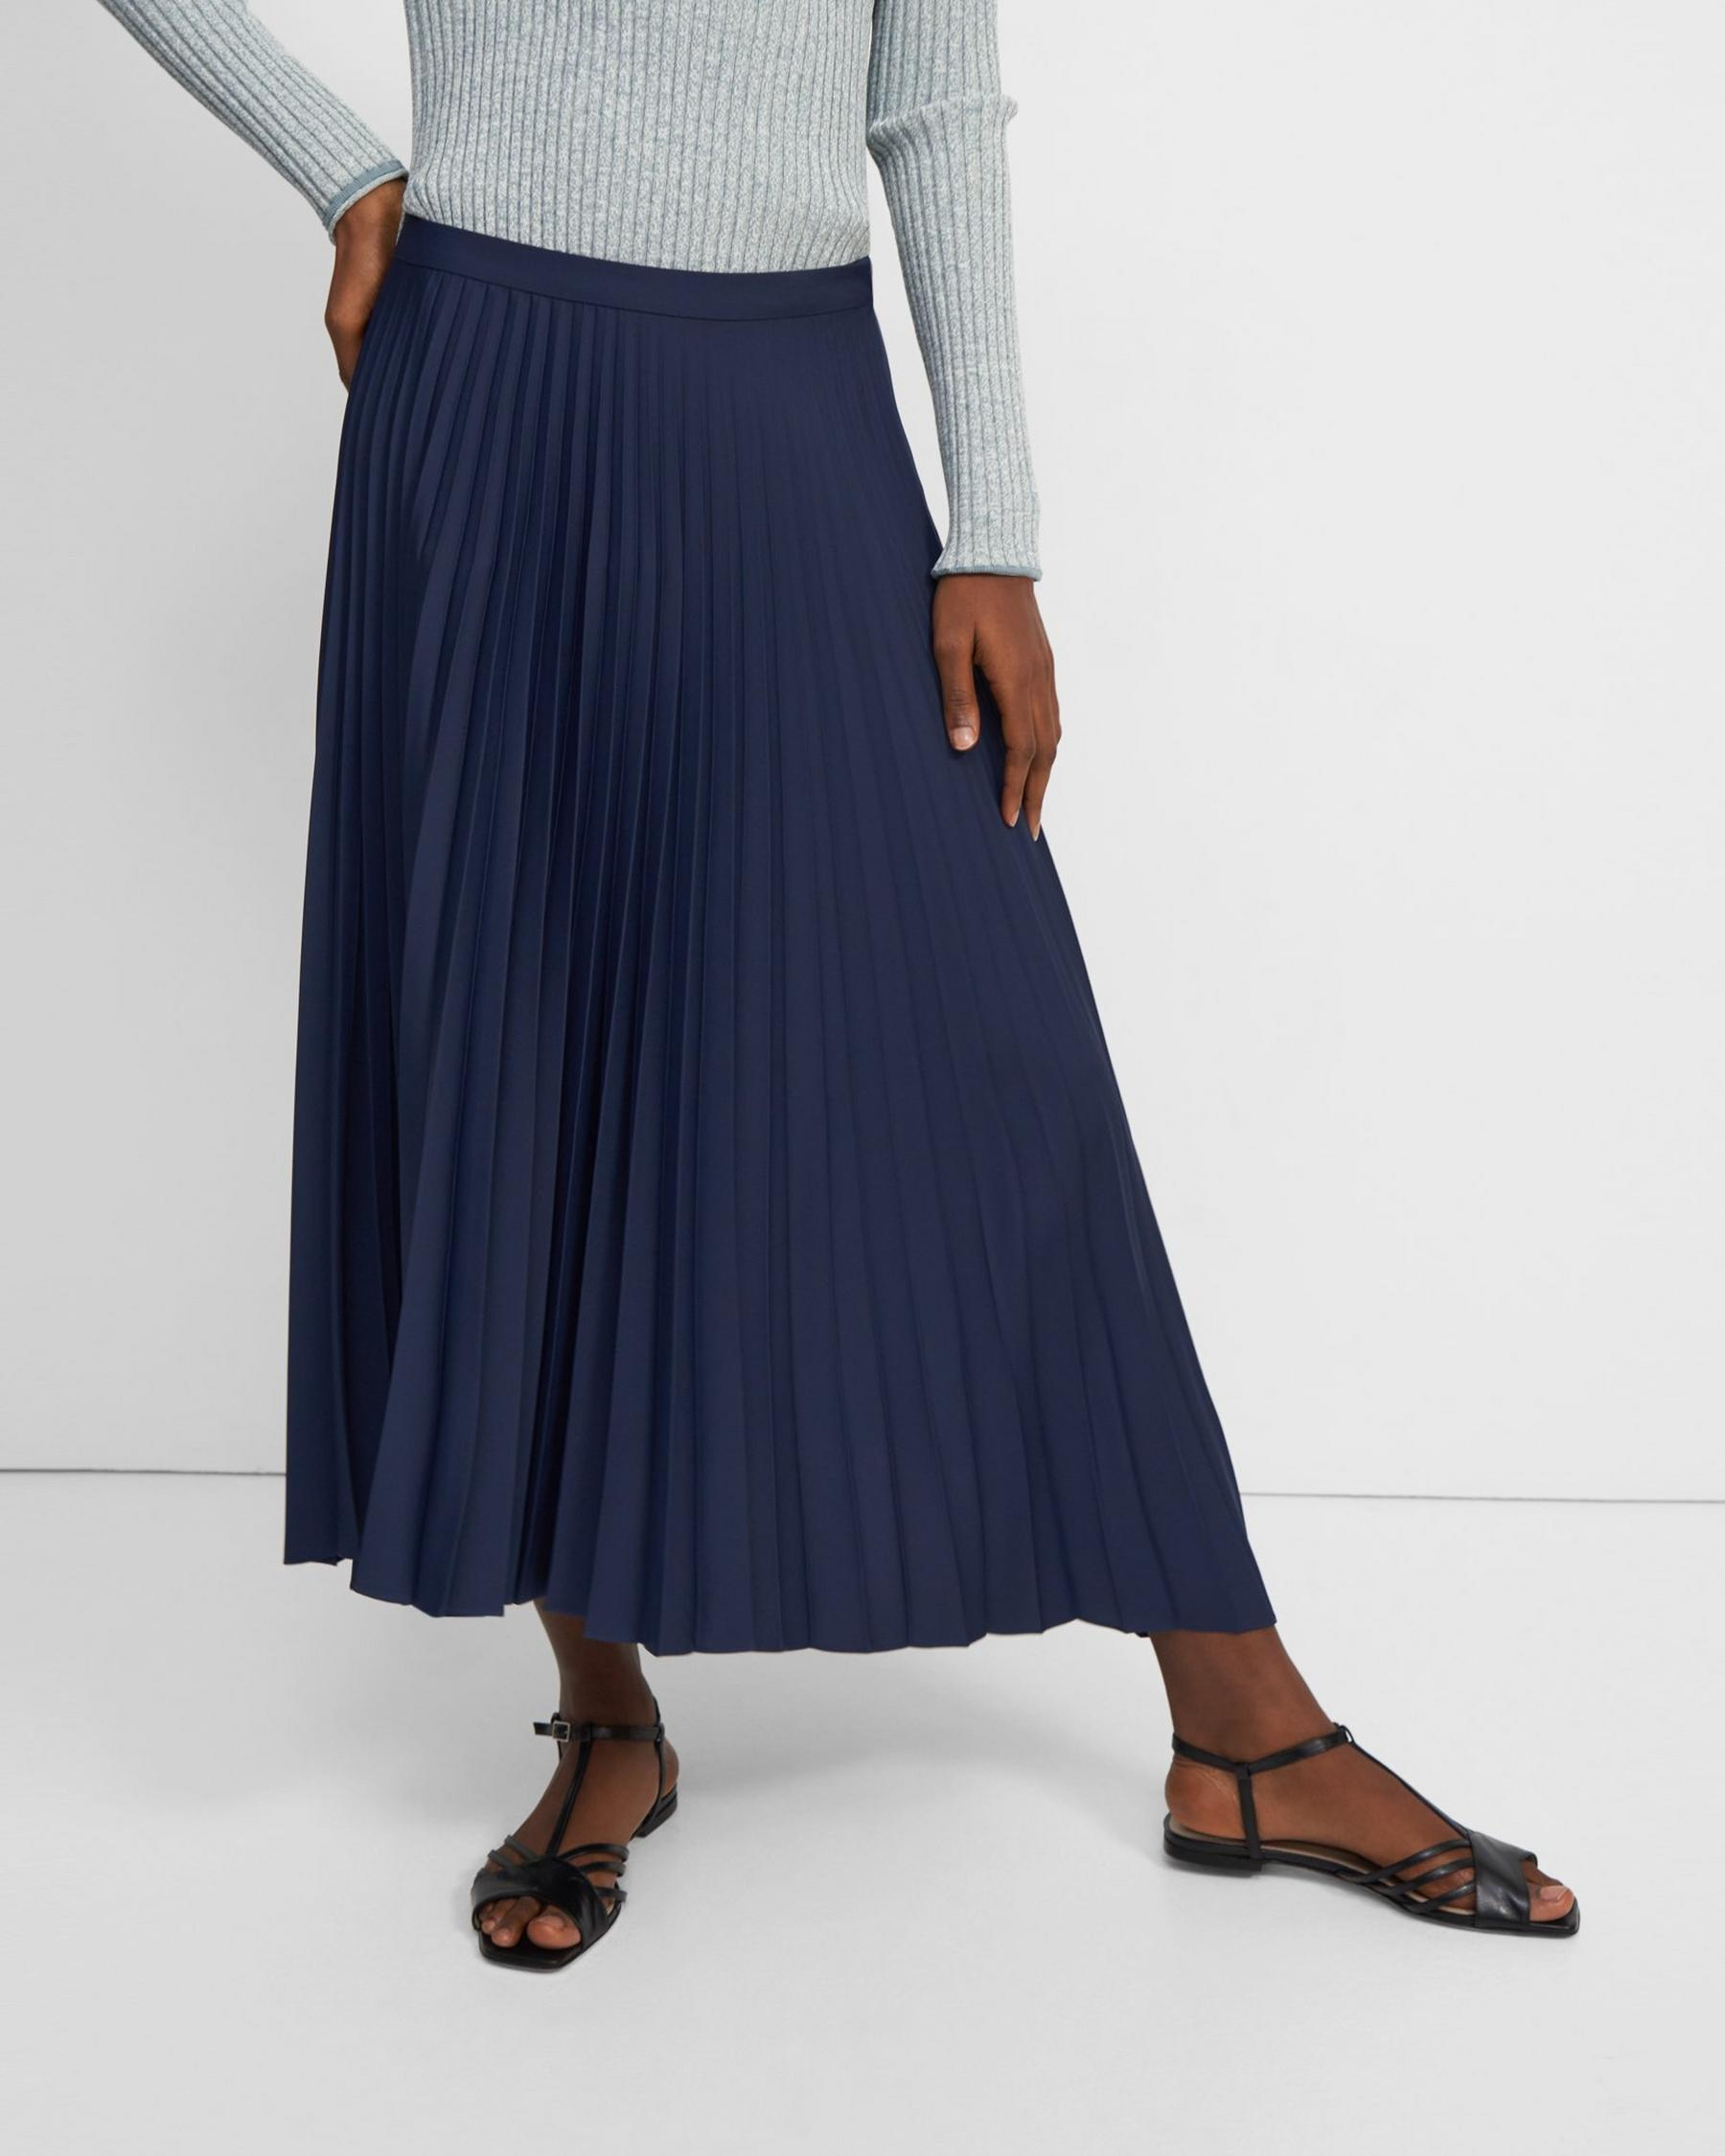 Pleated Skirt in Satin Crepe 1